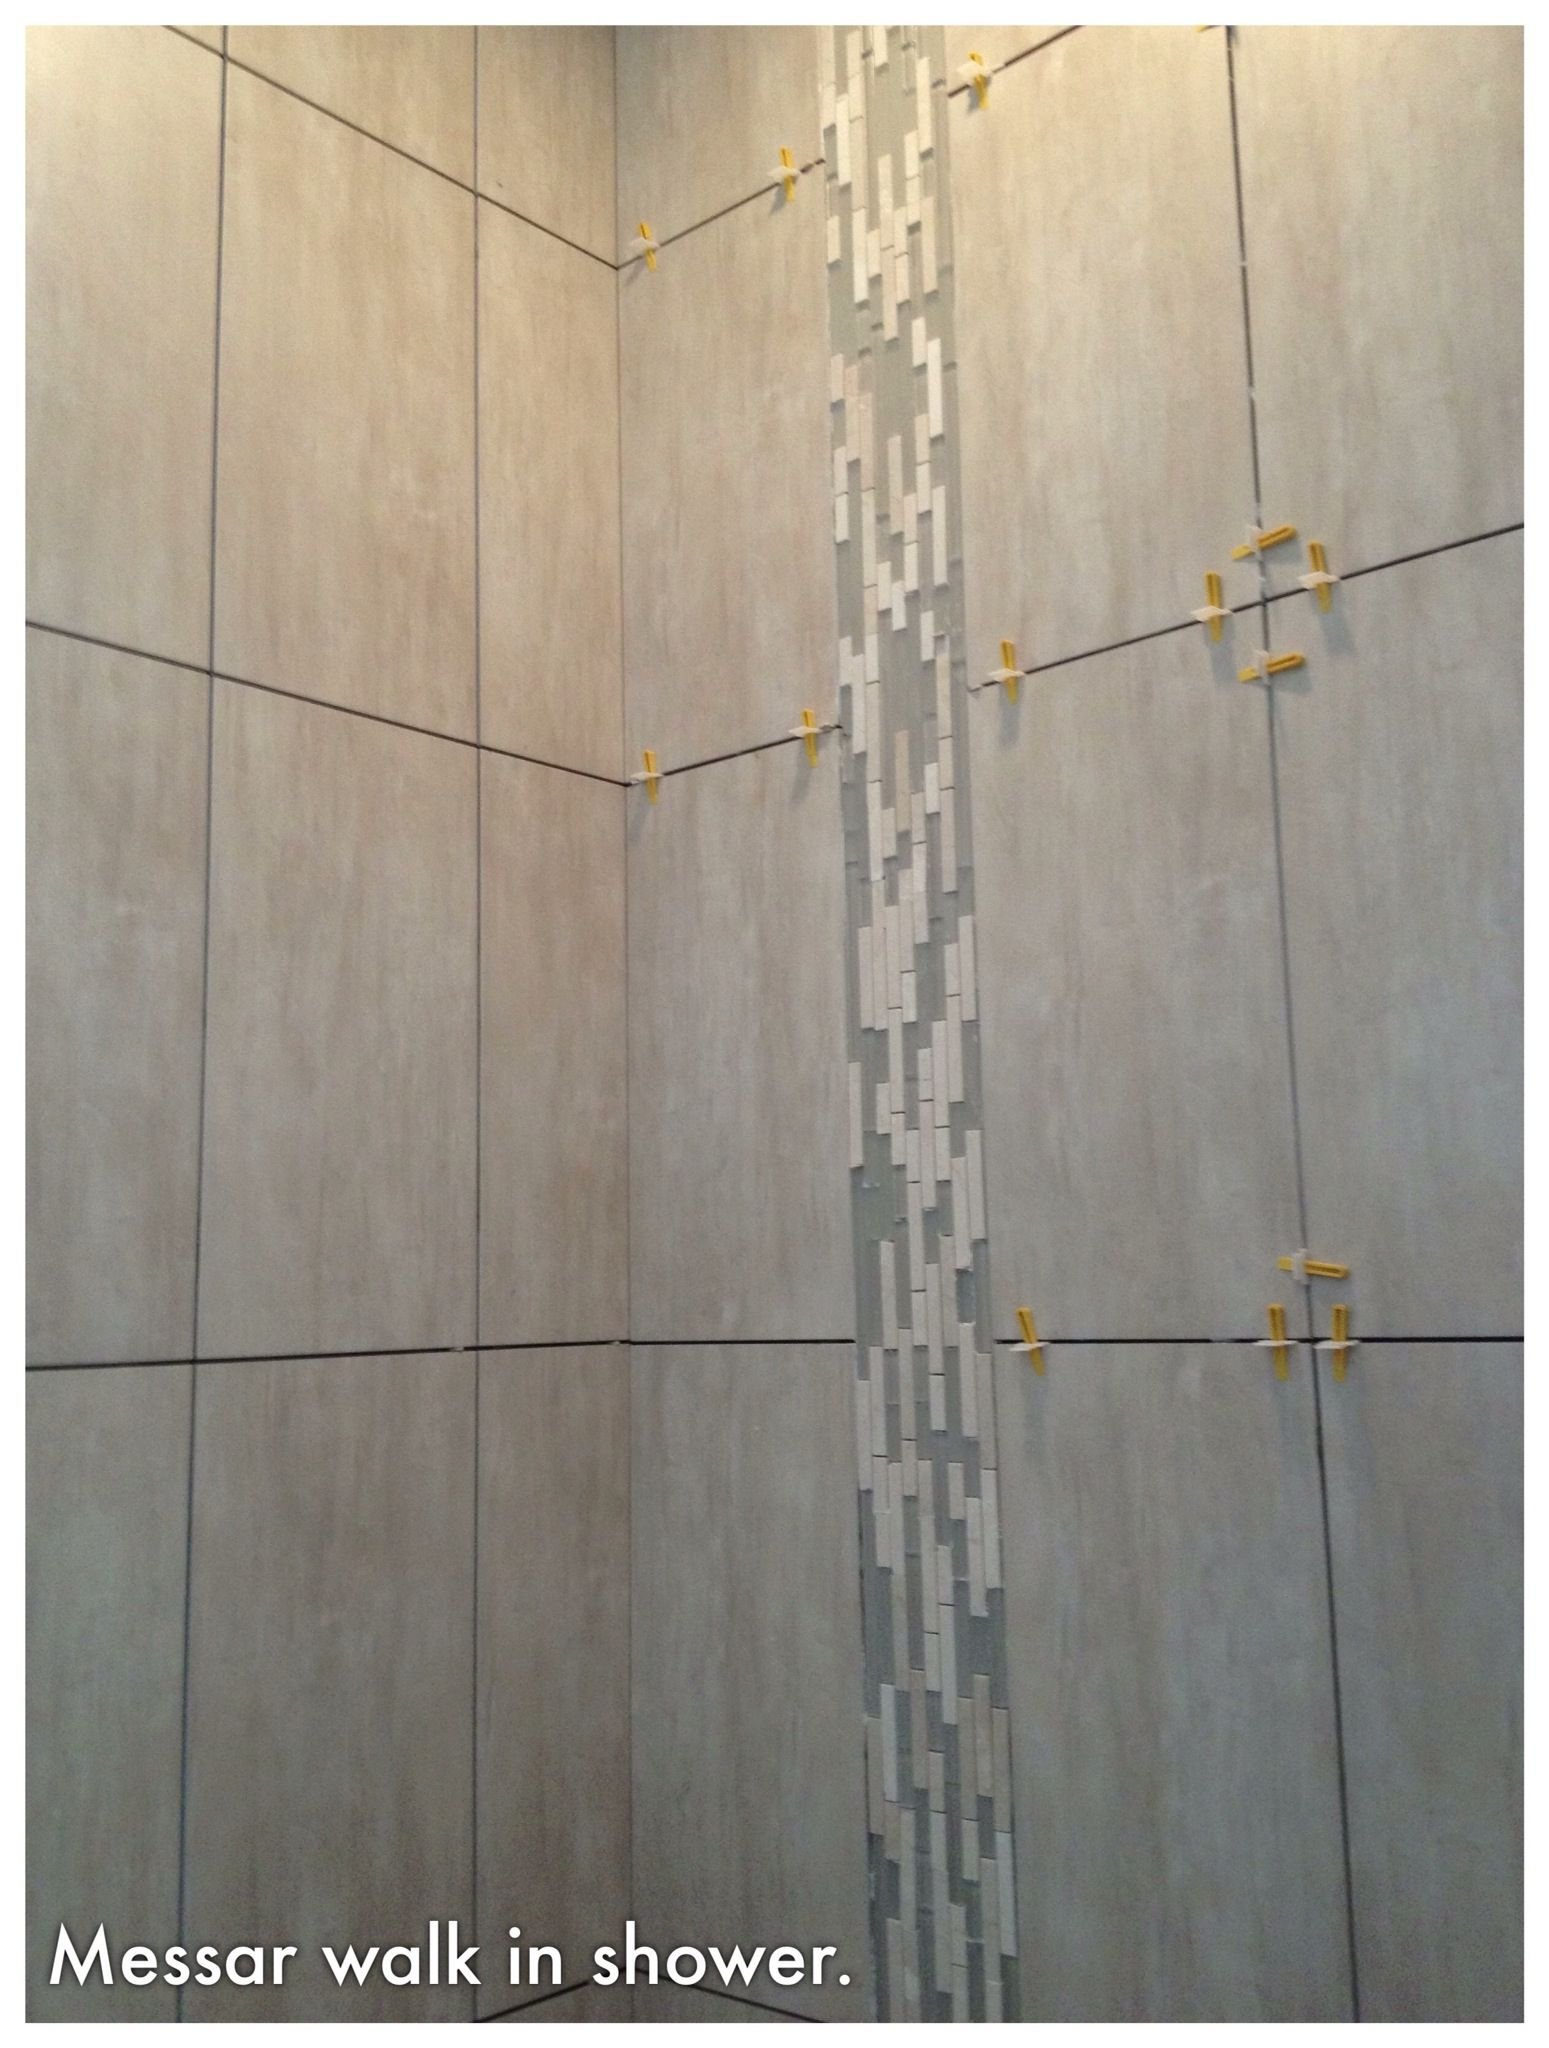 Waterfall Showers Designs Walk In Shower 12 X 24 Tiles And Vertical Waterfall Glass